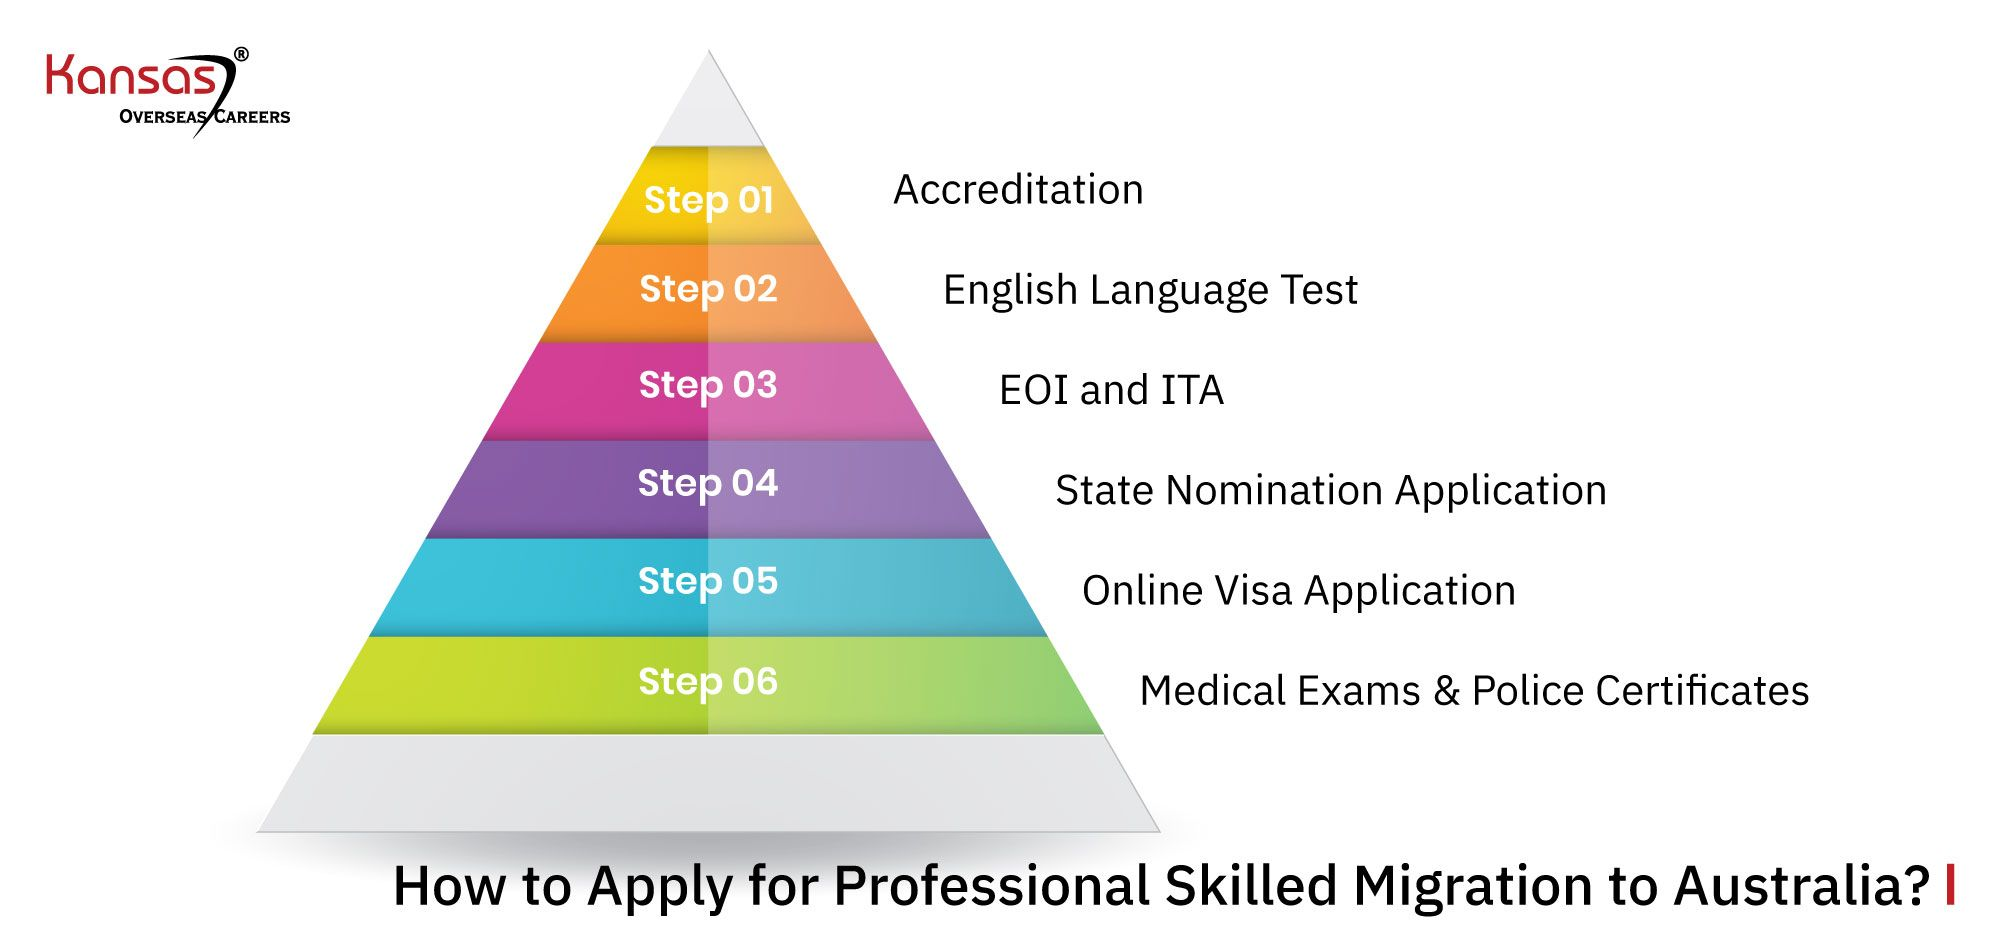 How-to-Apply-for-Professional-Skilled-Migration-to-Australia-